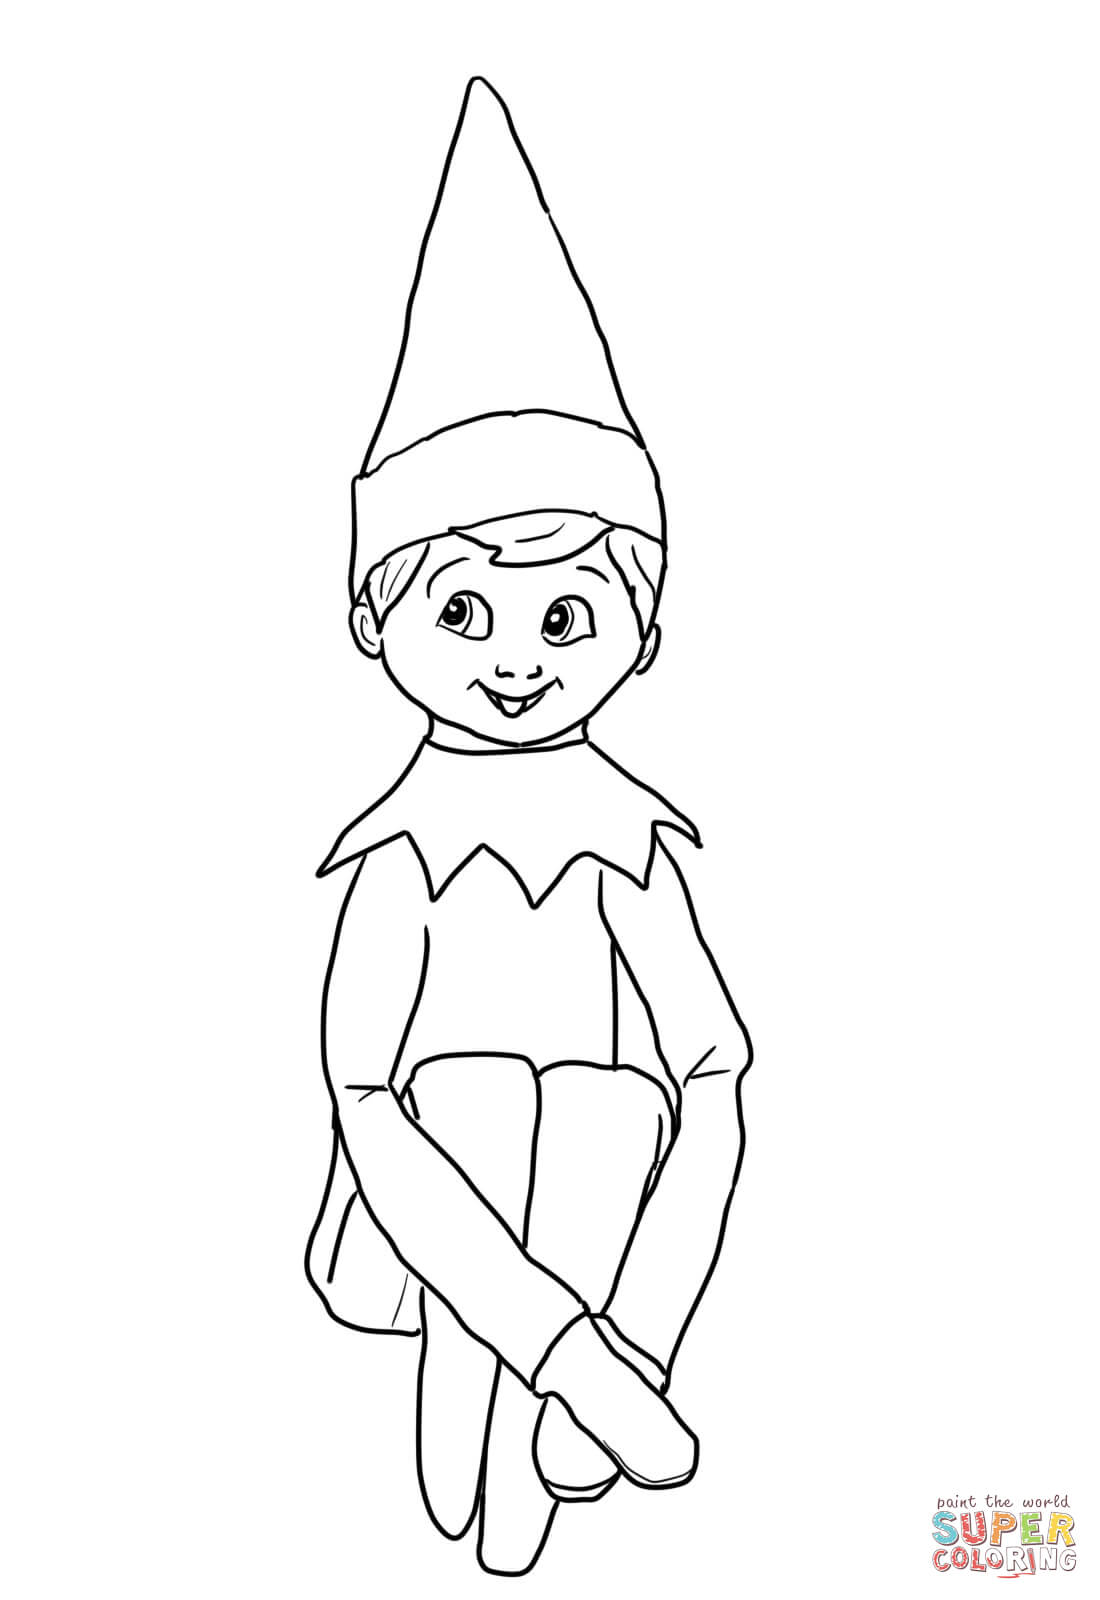 elves coloring pages to printy - photo#22